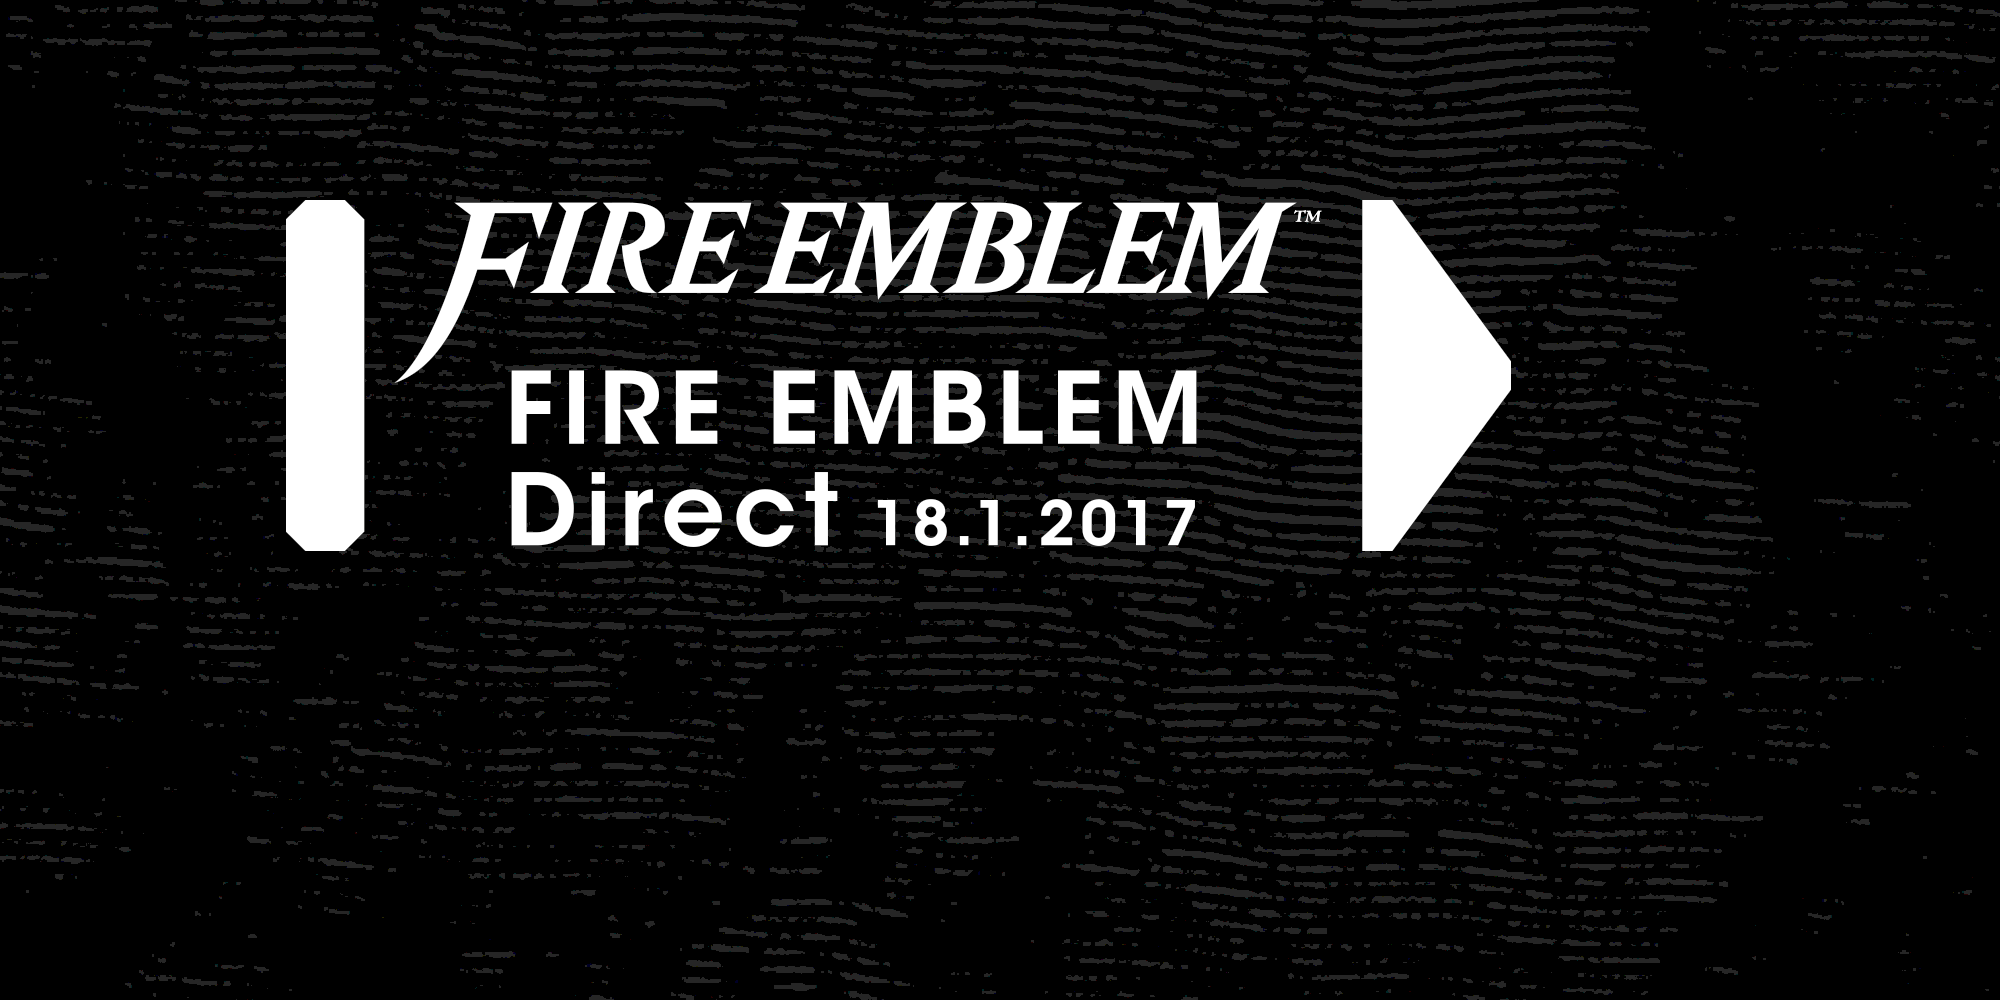 Tune In Tomorrow For The Fire Emblem Nintendo Direct